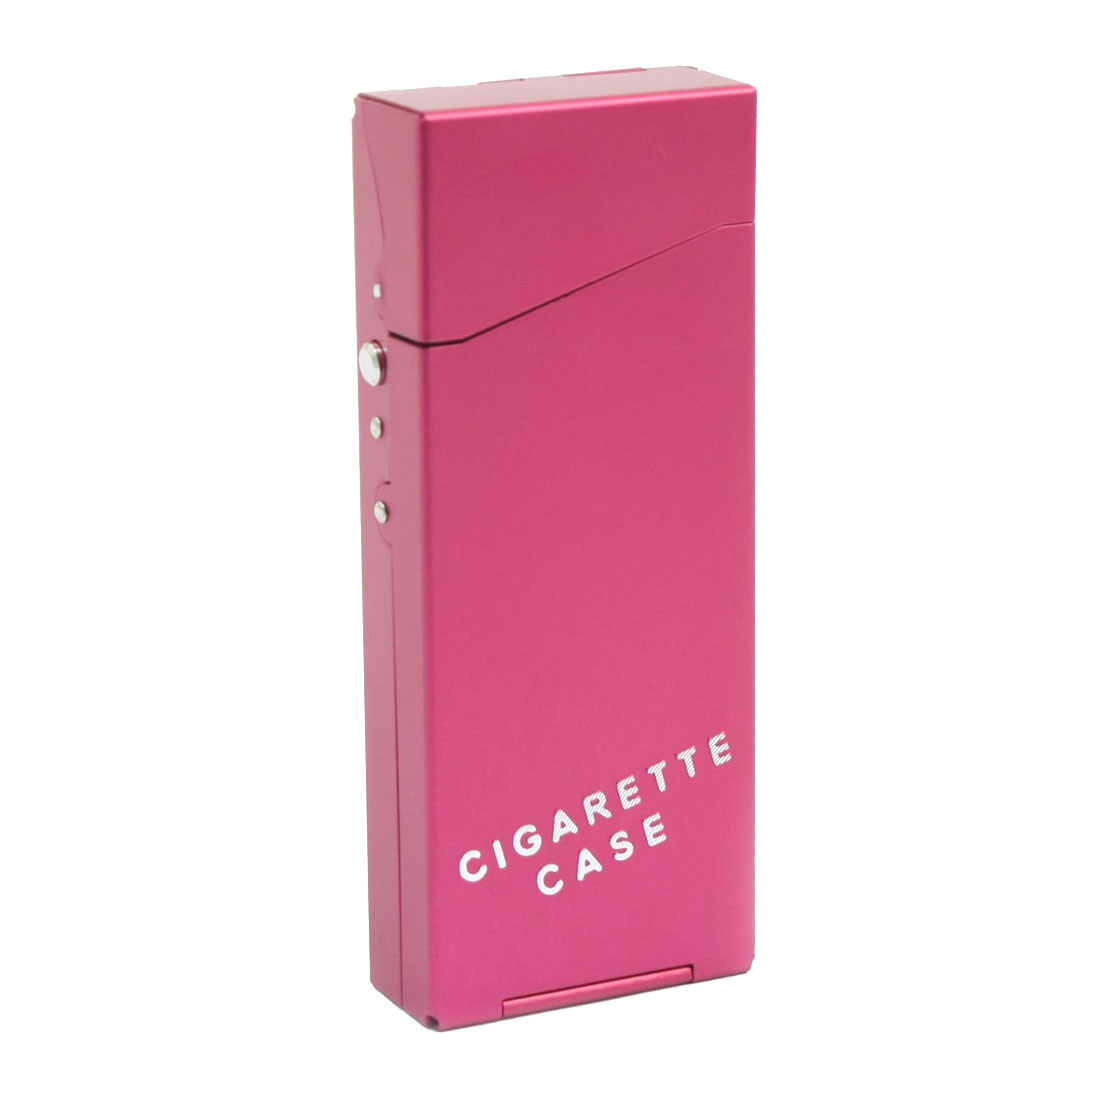 Fuchsia Metal Rectangular 10.8cm x 4.3cm x 1.8cm Spring Loaded Hinge Case Box Container Holder for 20pcs Cigarette